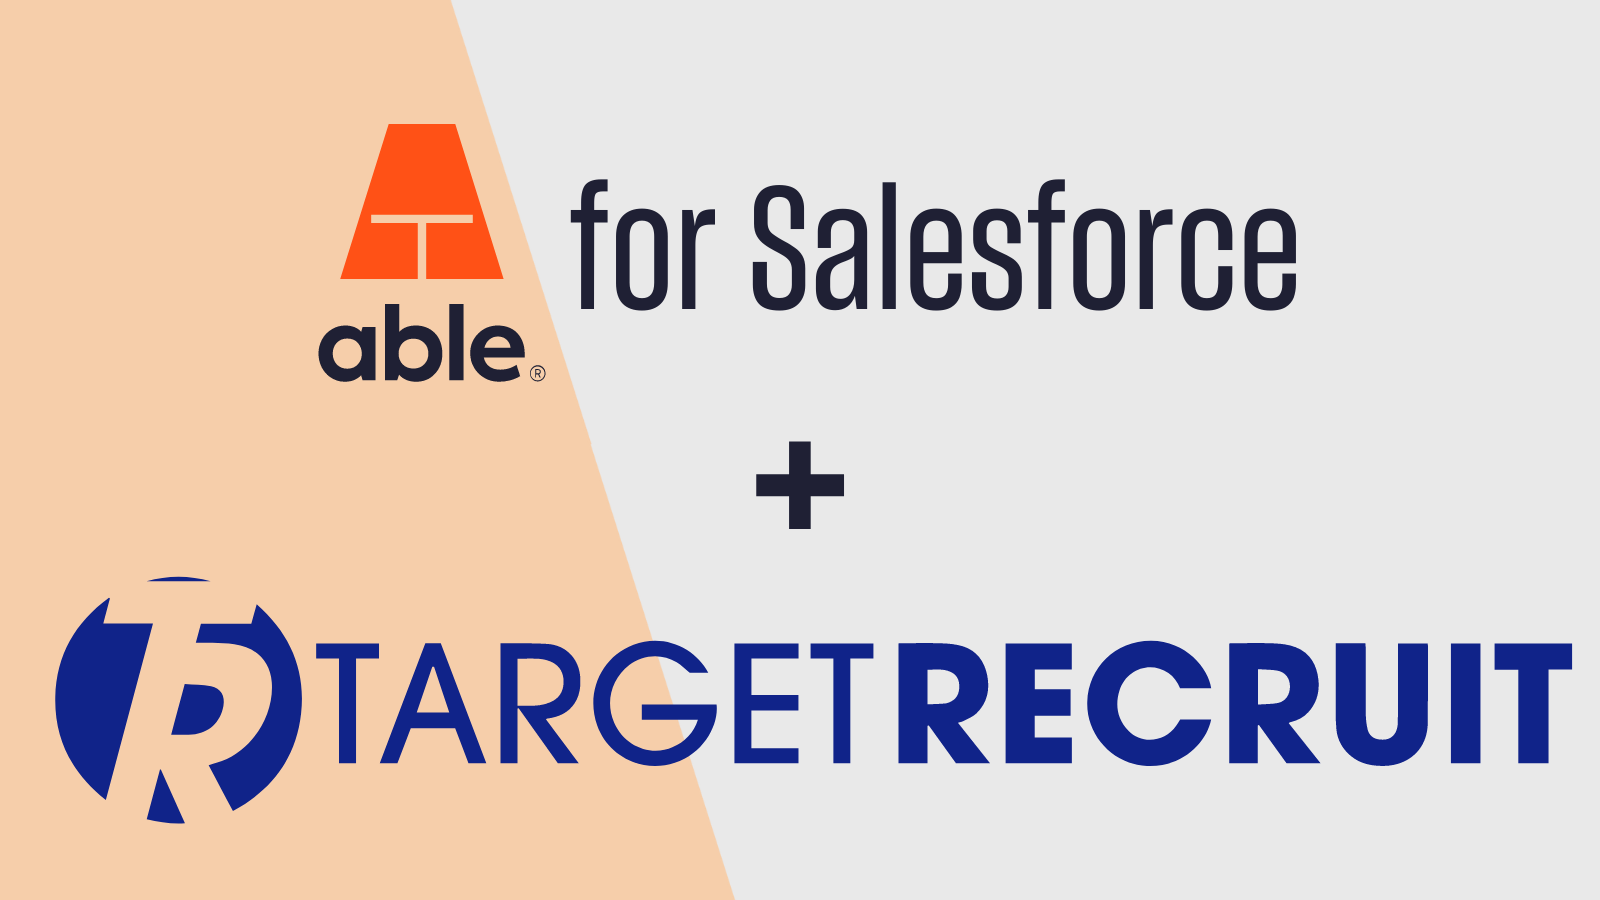 Able For Salesforce Now Available for TargetRecruit Customers